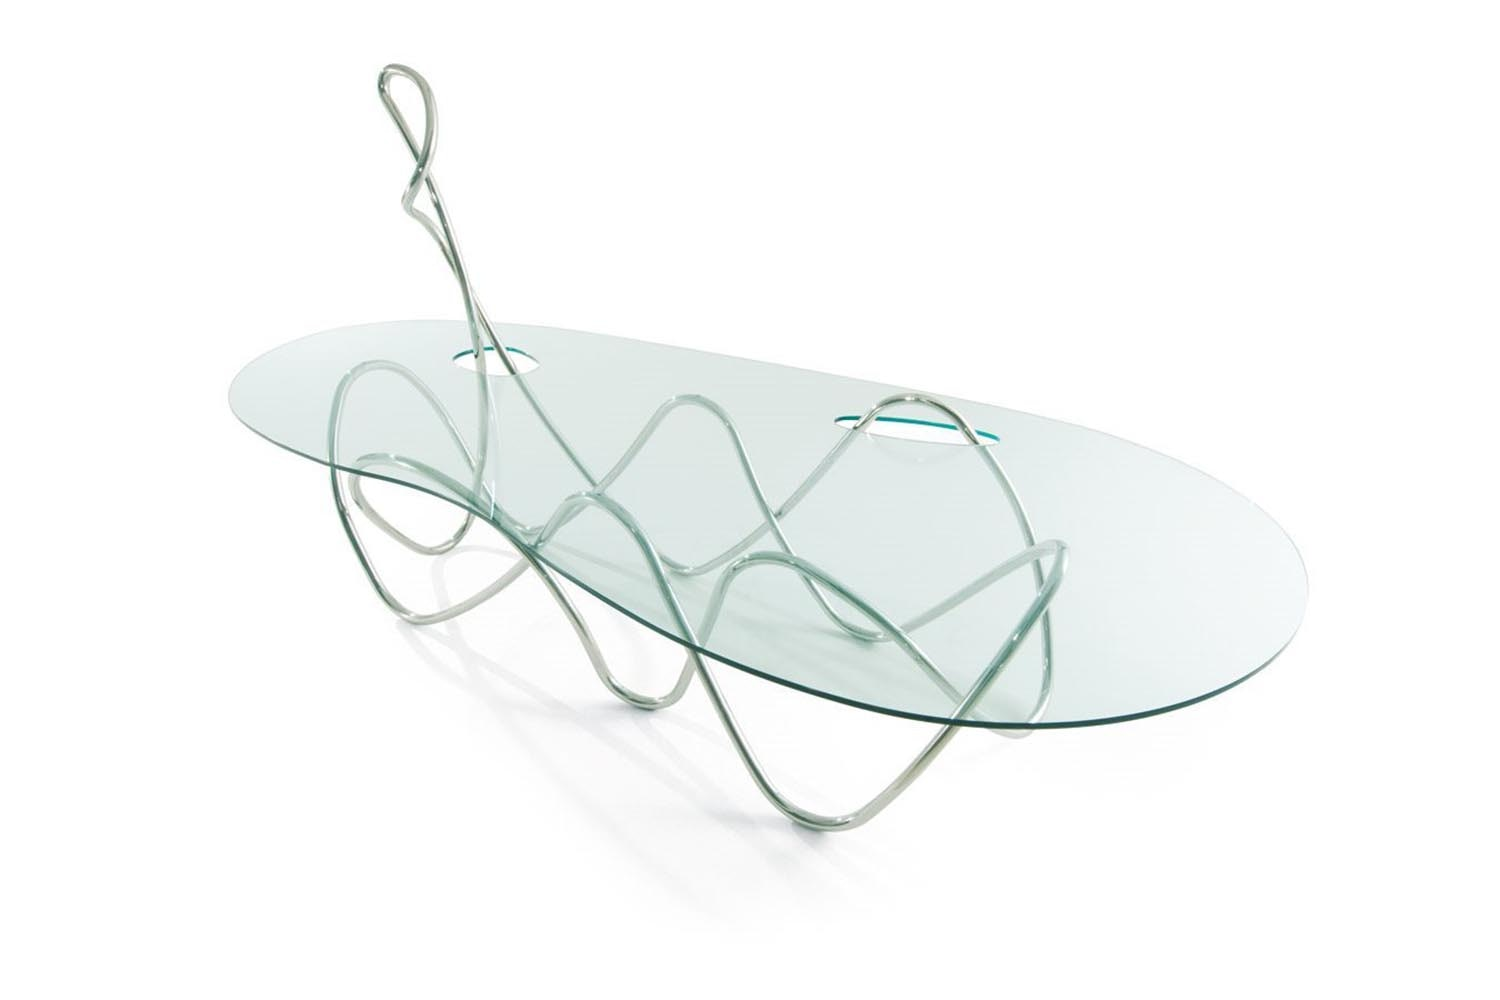 Capriccio Table by Jacopo Foggini for Edra